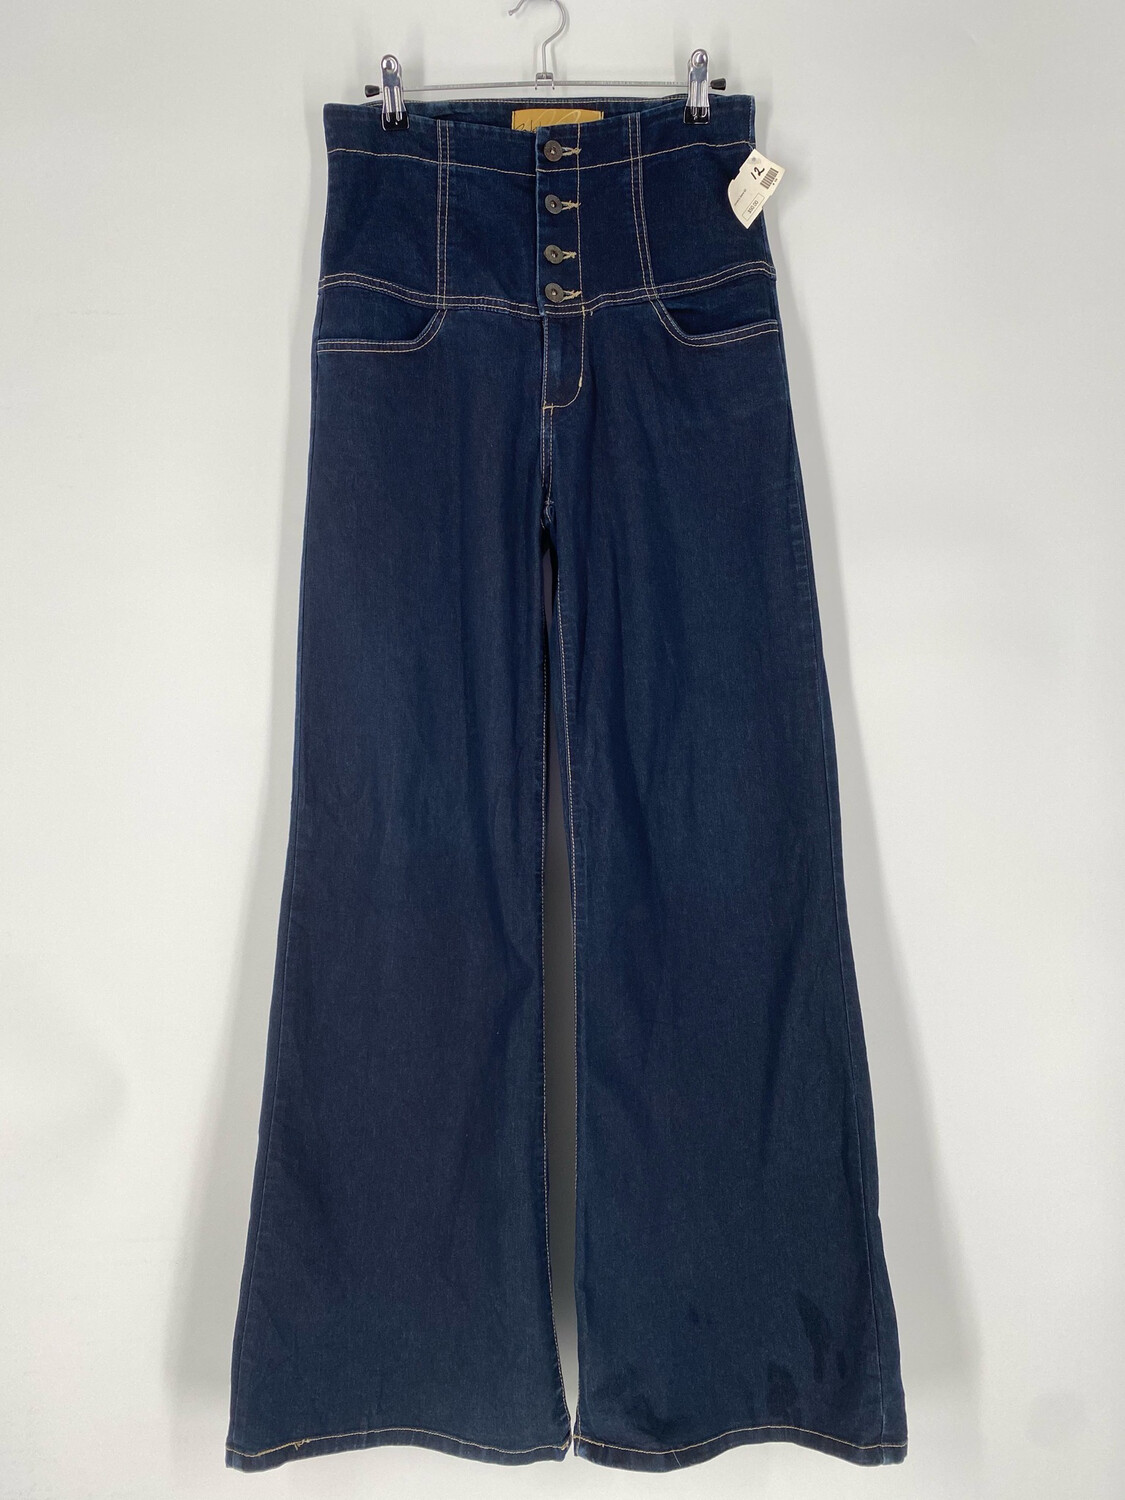 Wat Button-Up High Rise Flare Jeans Size 28